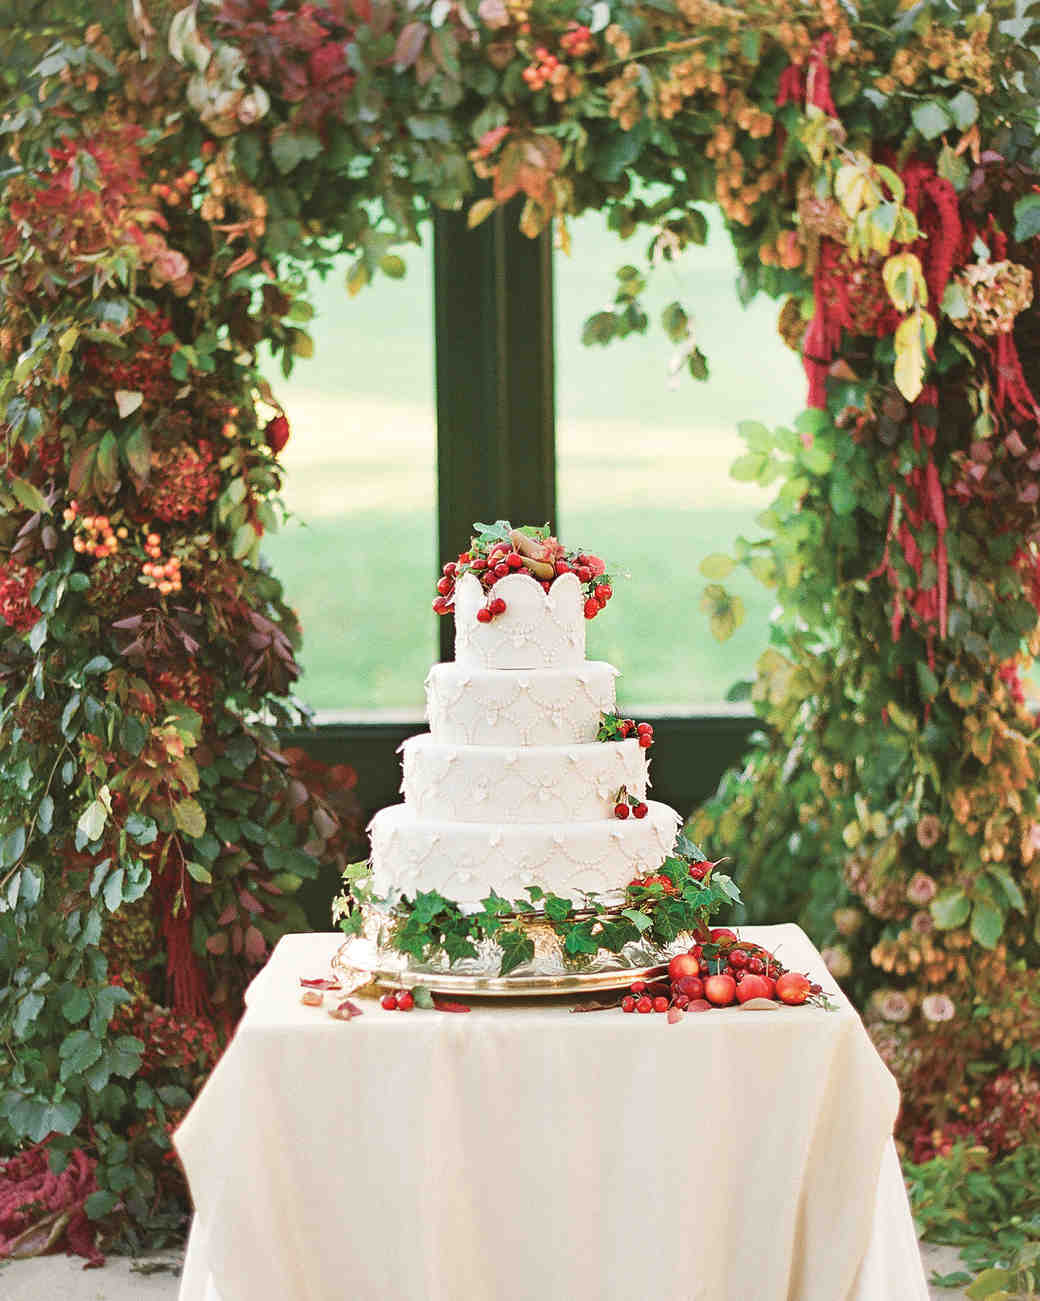 Four-Tiered White Wedding Cake with Piping and Ivy, Crabapples, and Mini Pears